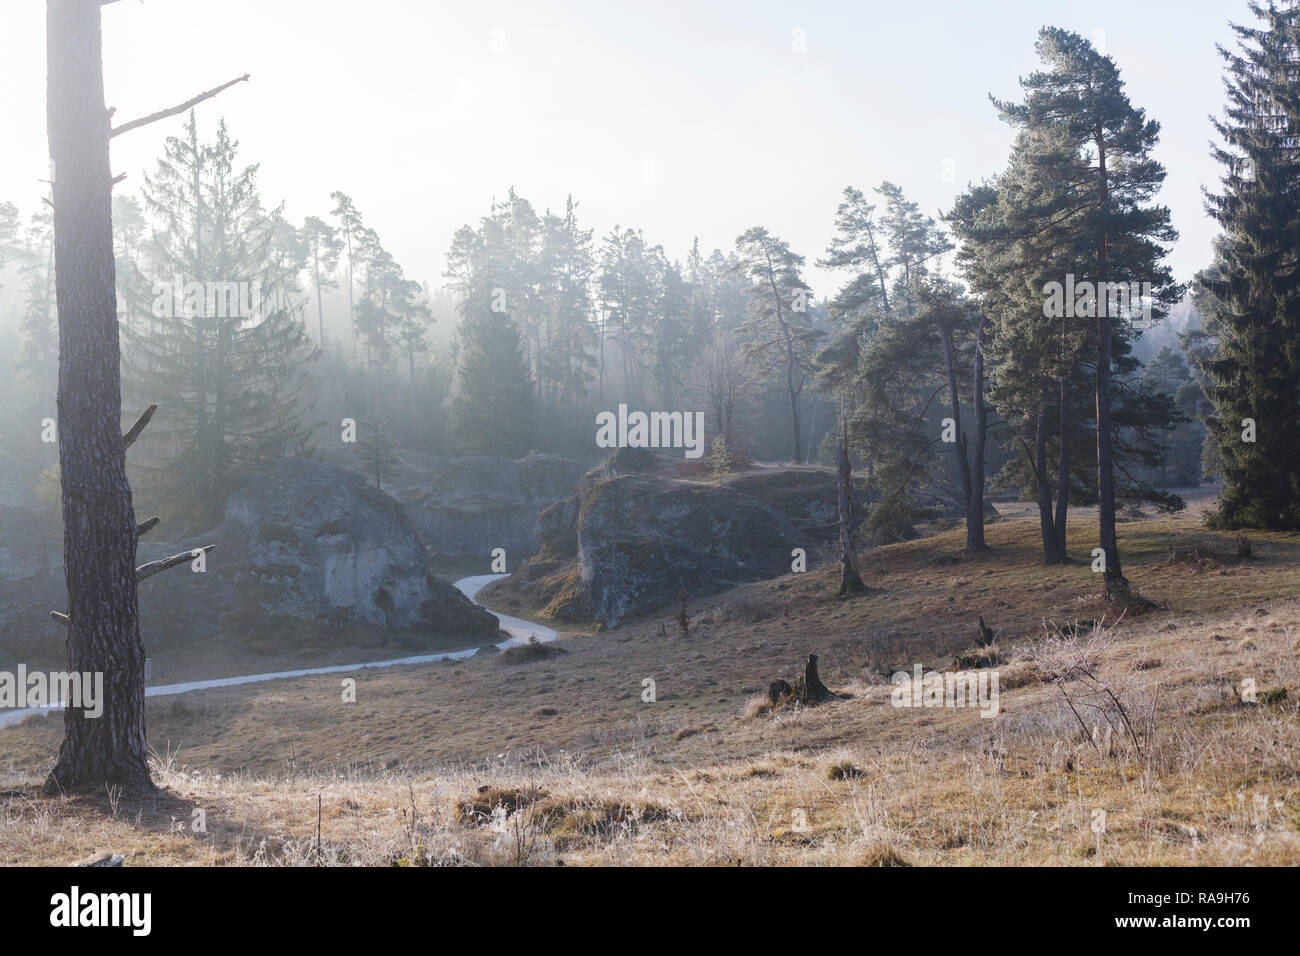 Wental / Germany  December 2016: The Wen Valley a typical dry valley of the Schwäbische Alb. There are several remarkable limestone rocks, which were  - Stock Image